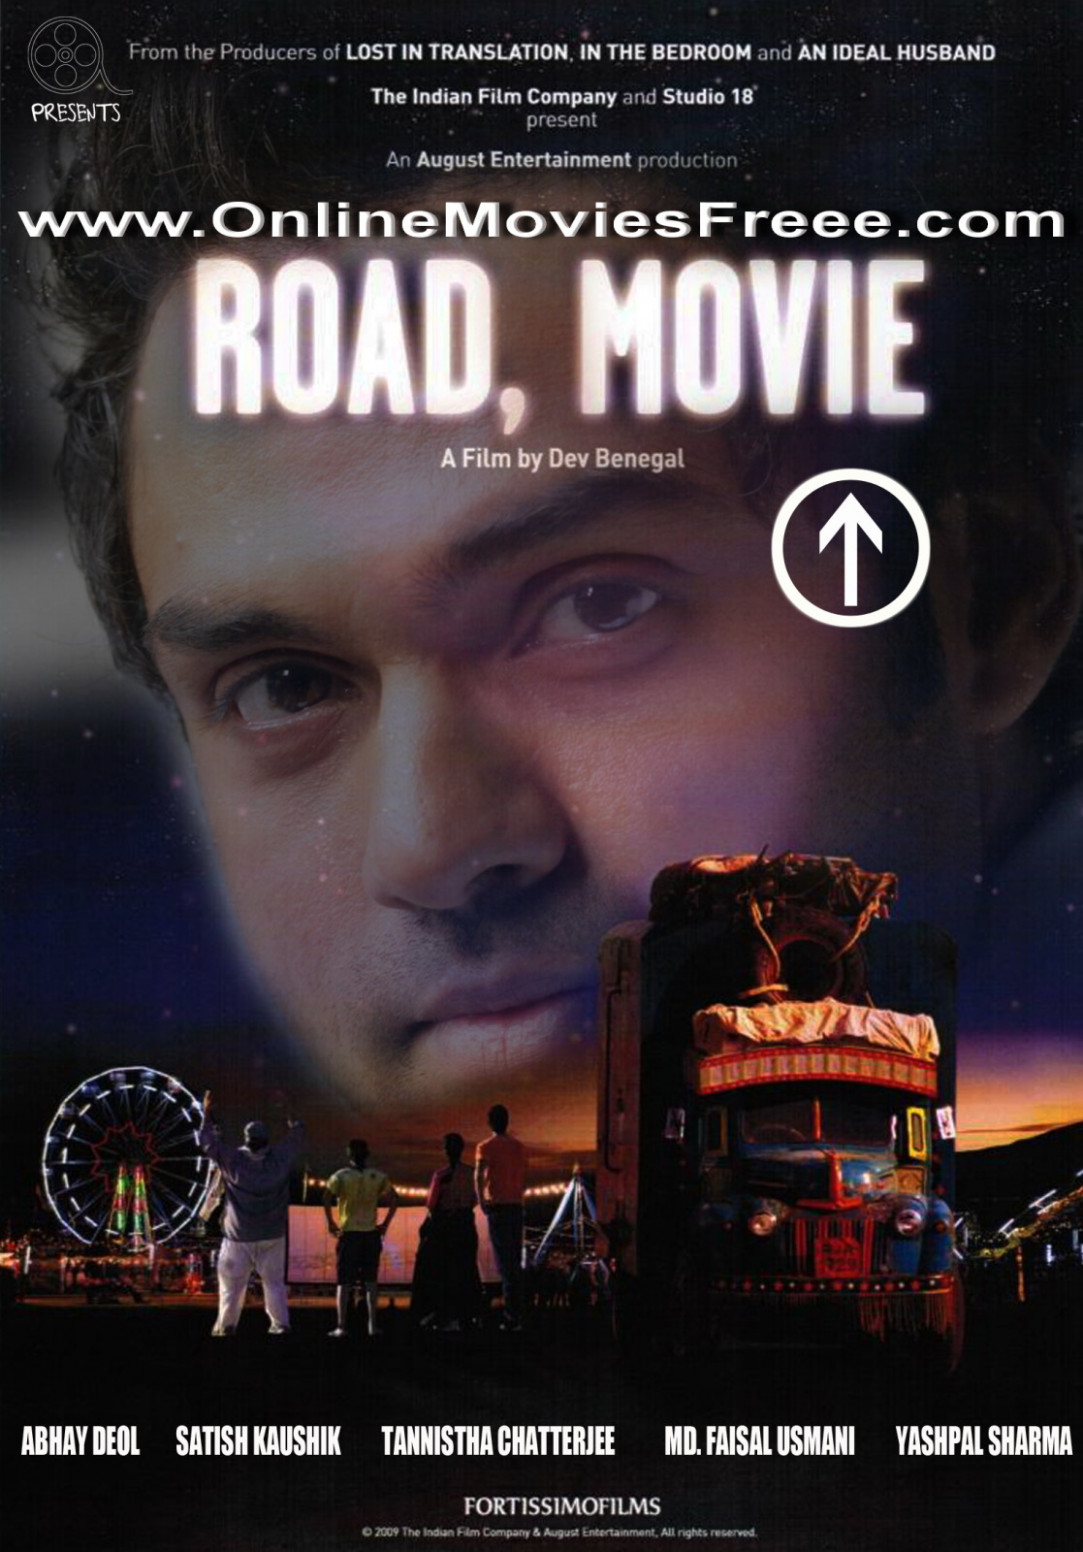 ROAD MOVIE 2010 1CD DVD Rip movie in direct link download ...